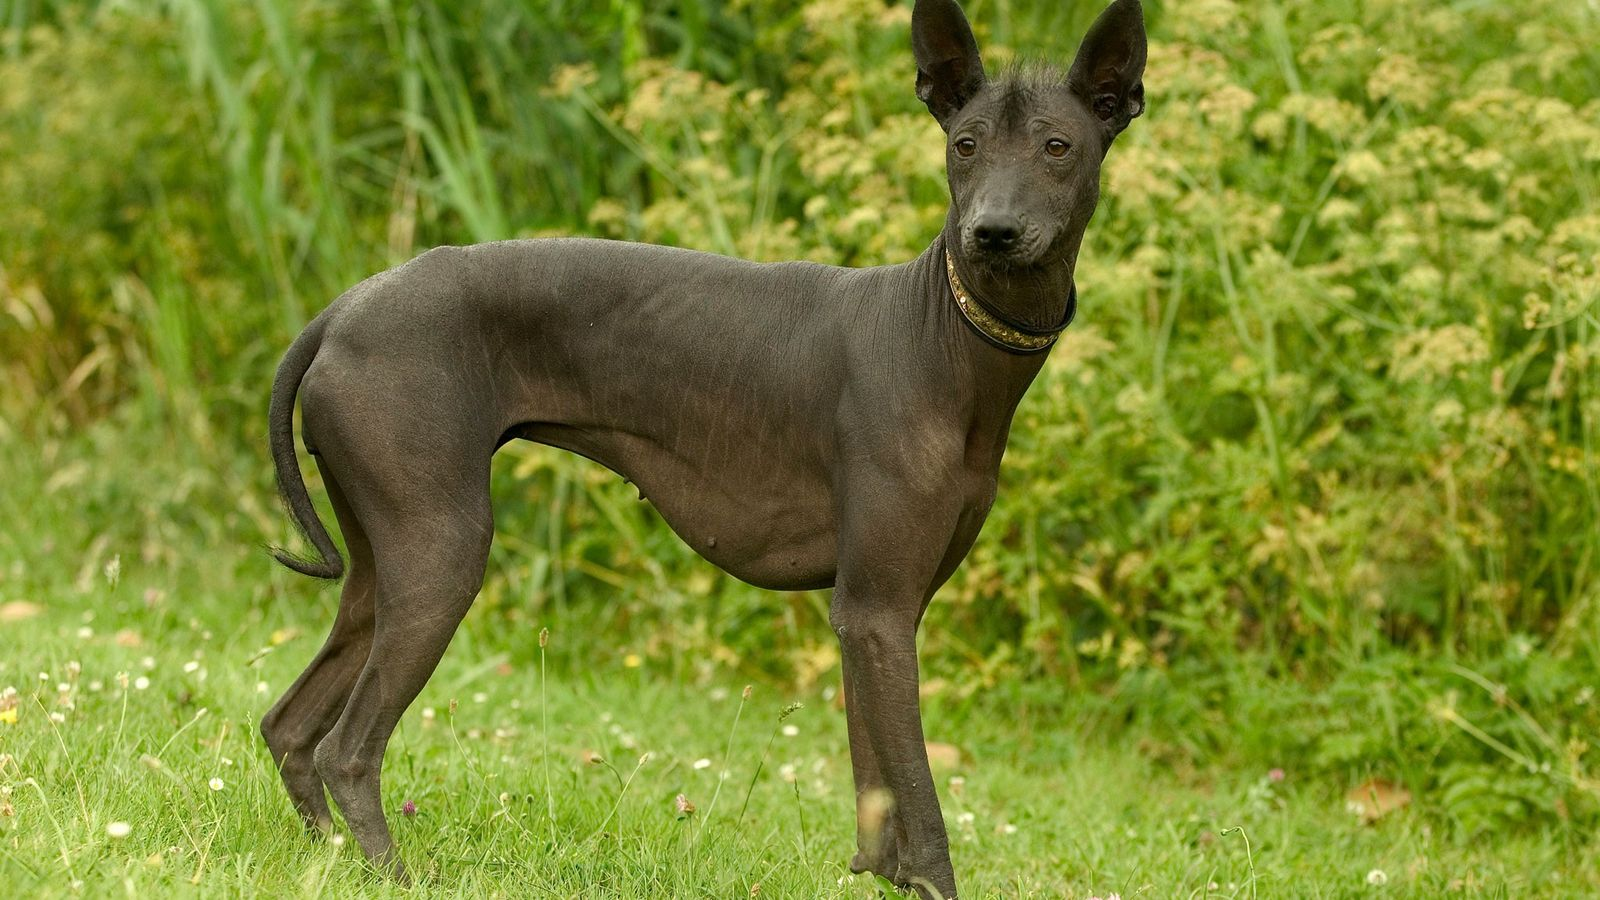 The xoloitzcuintli gets its mouthful of a name from two words in the language of the ...